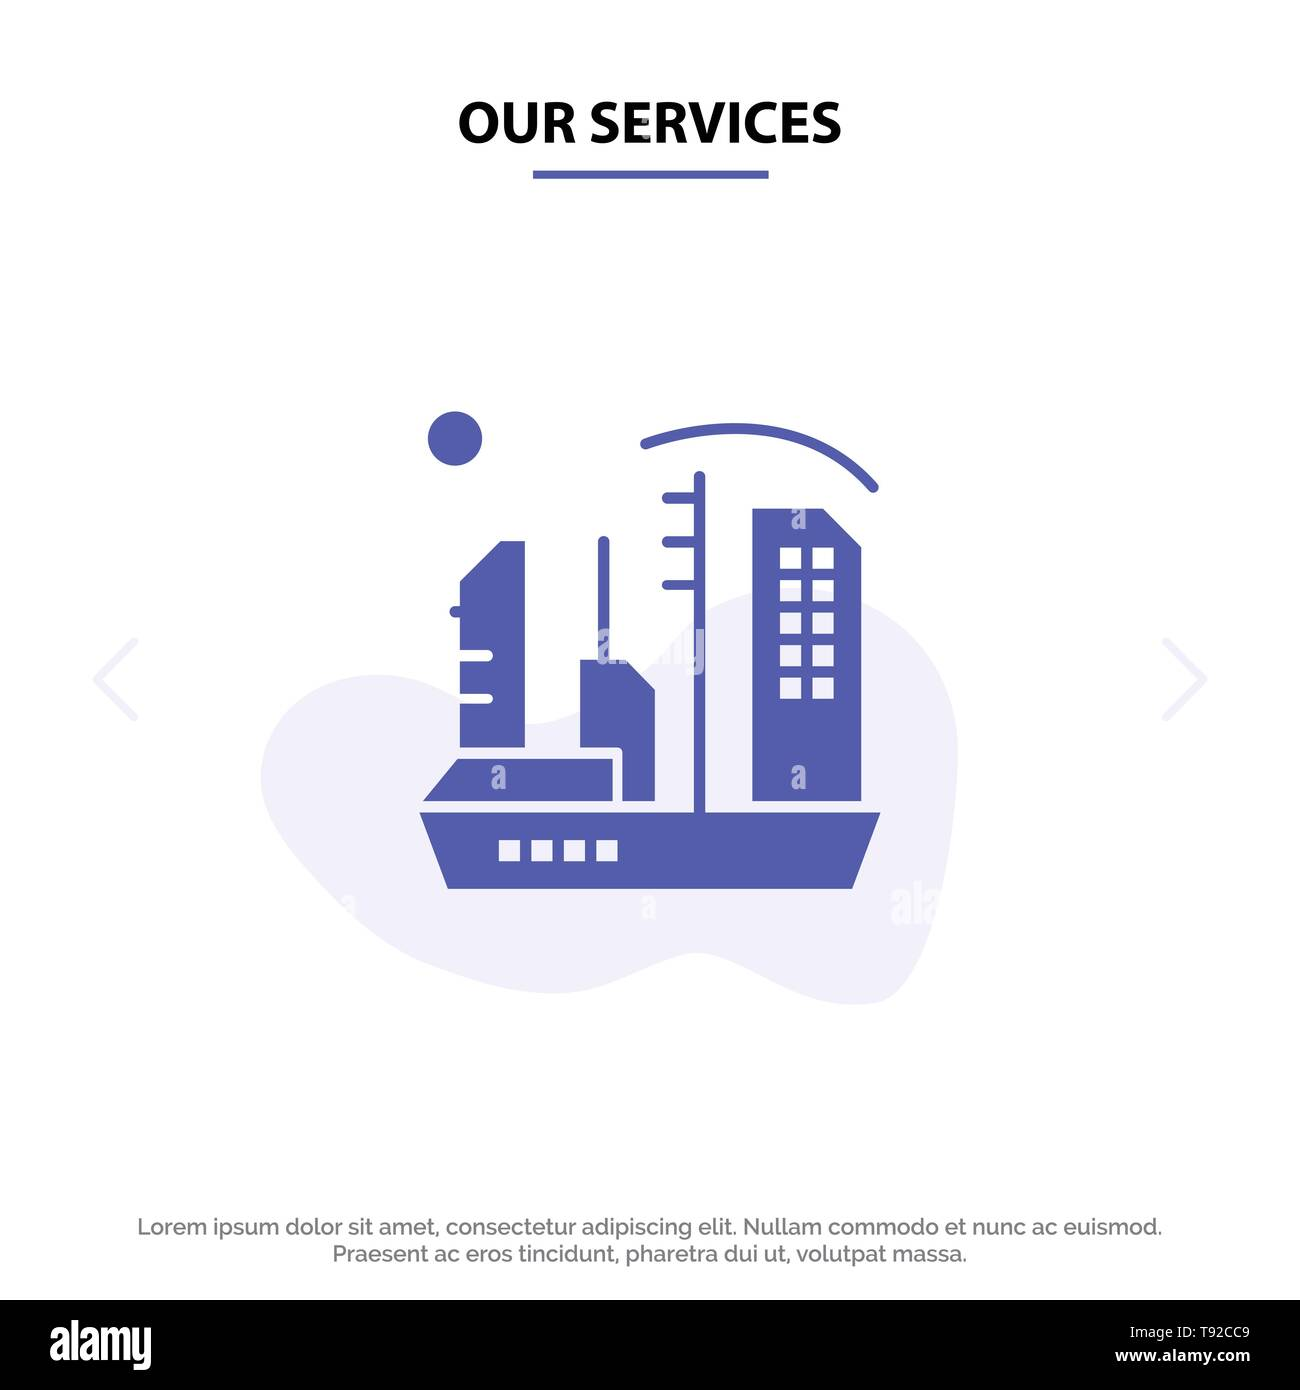 Our Services City, Colonization, Colony, Dome, Expansion Solid Glyph Icon Web card Template Stock Vector